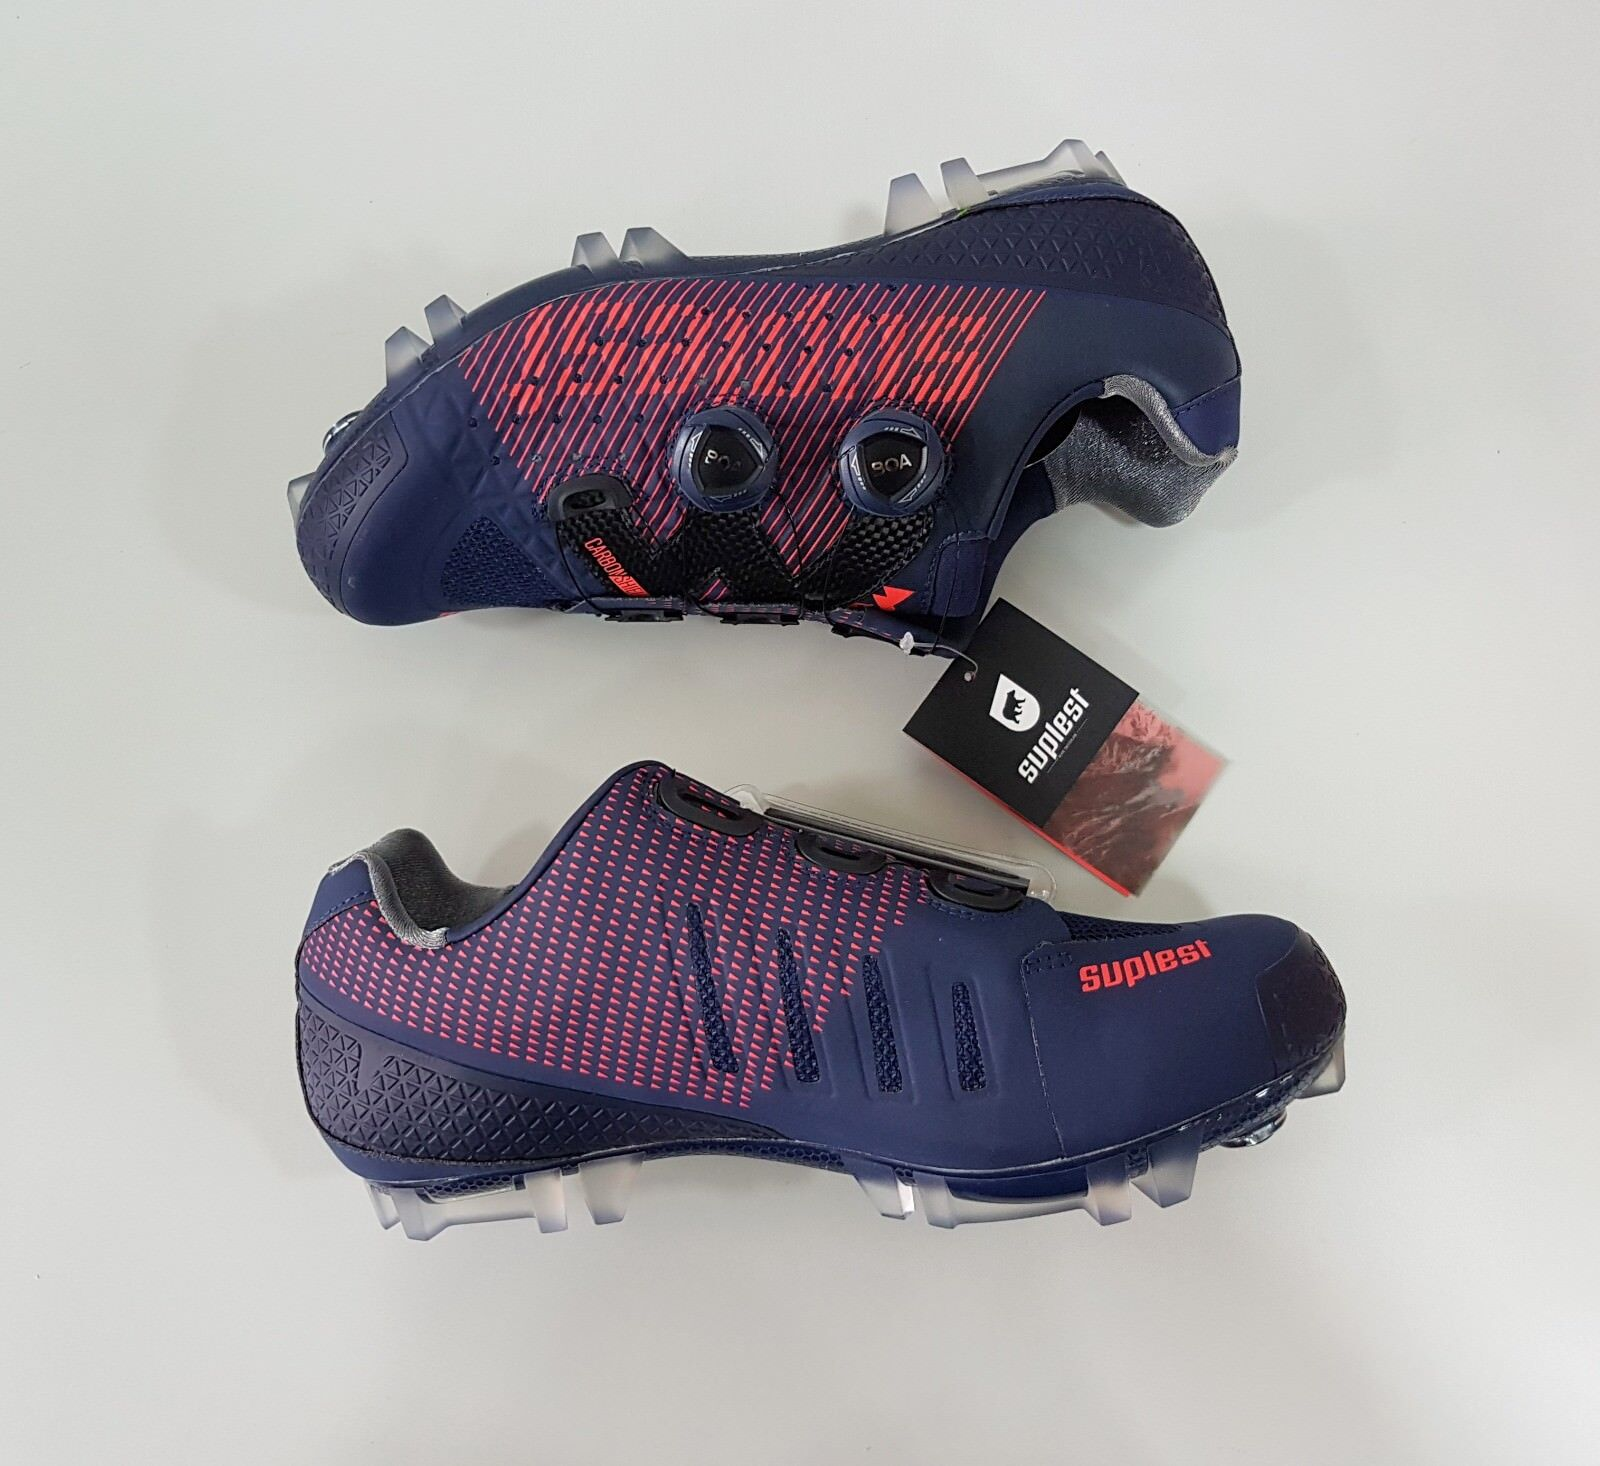 Suplest Crosscountry XC Pro Carbon Mountain  Bike MTB shoes Size 42 Navy Coral  quick answers